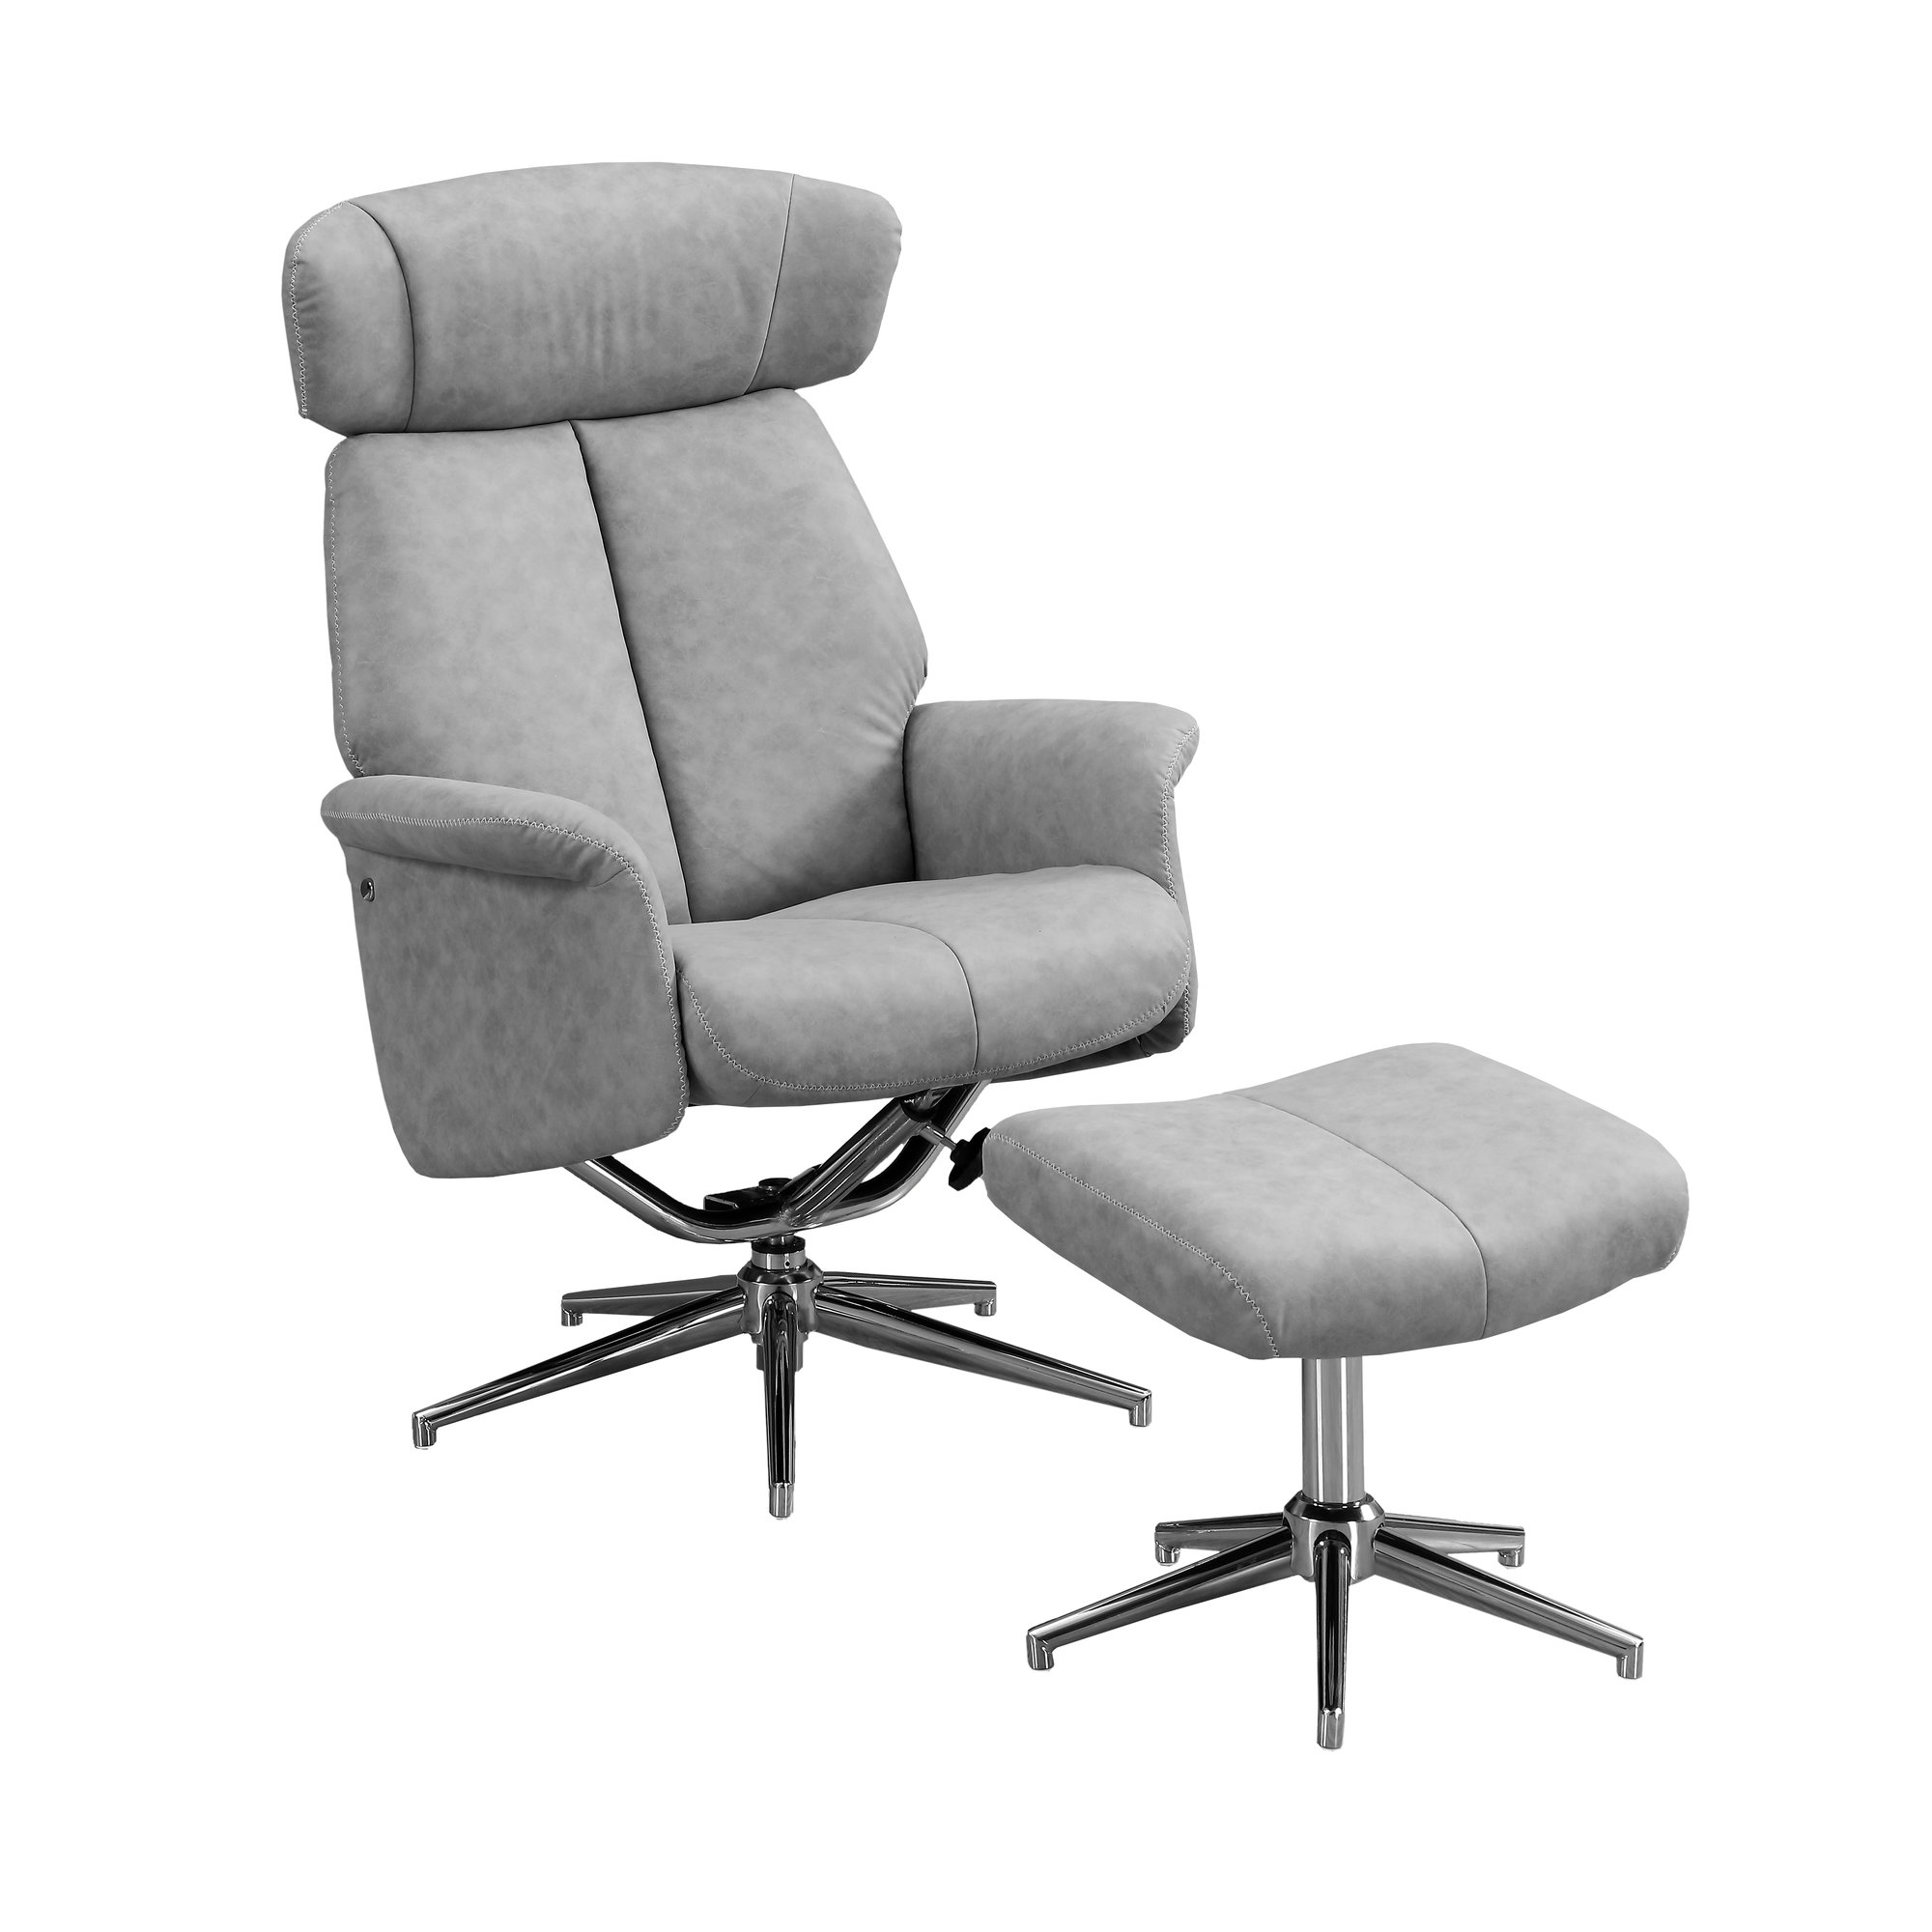 RECLINER - 2PCS SET / GREY SWIVEL - ADJUSTABLE HEADREST